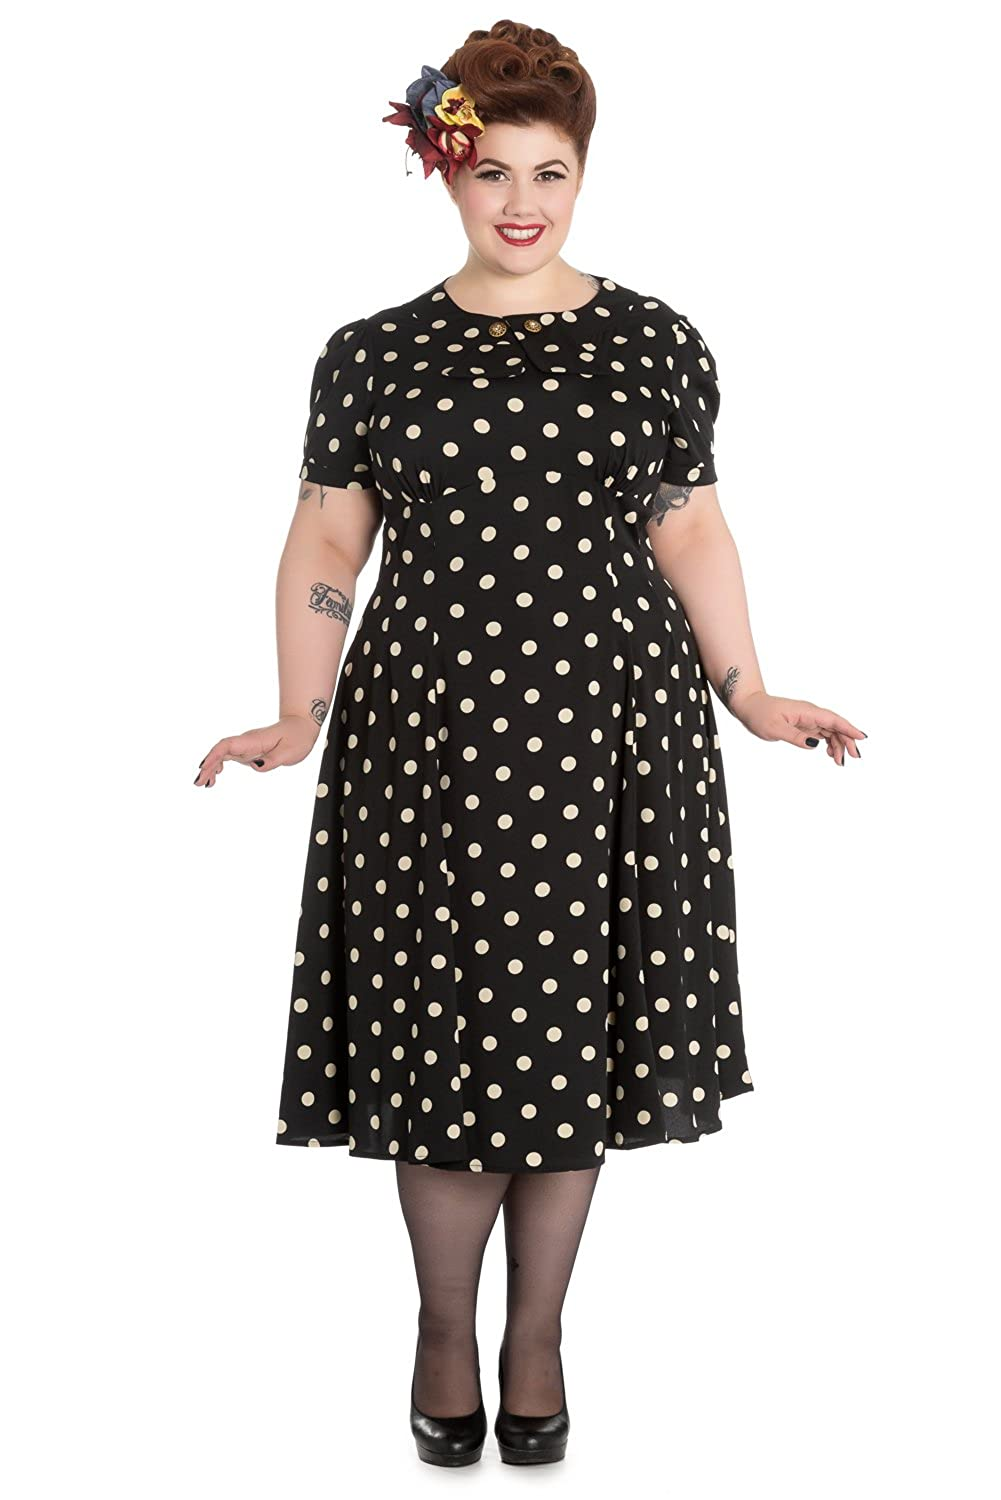 1930s Plus Size Dresses Hell Bunny Plus Size Sweet Office Lady Black Mod Polka Dot Dress $72.00 AT vintagedancer.com